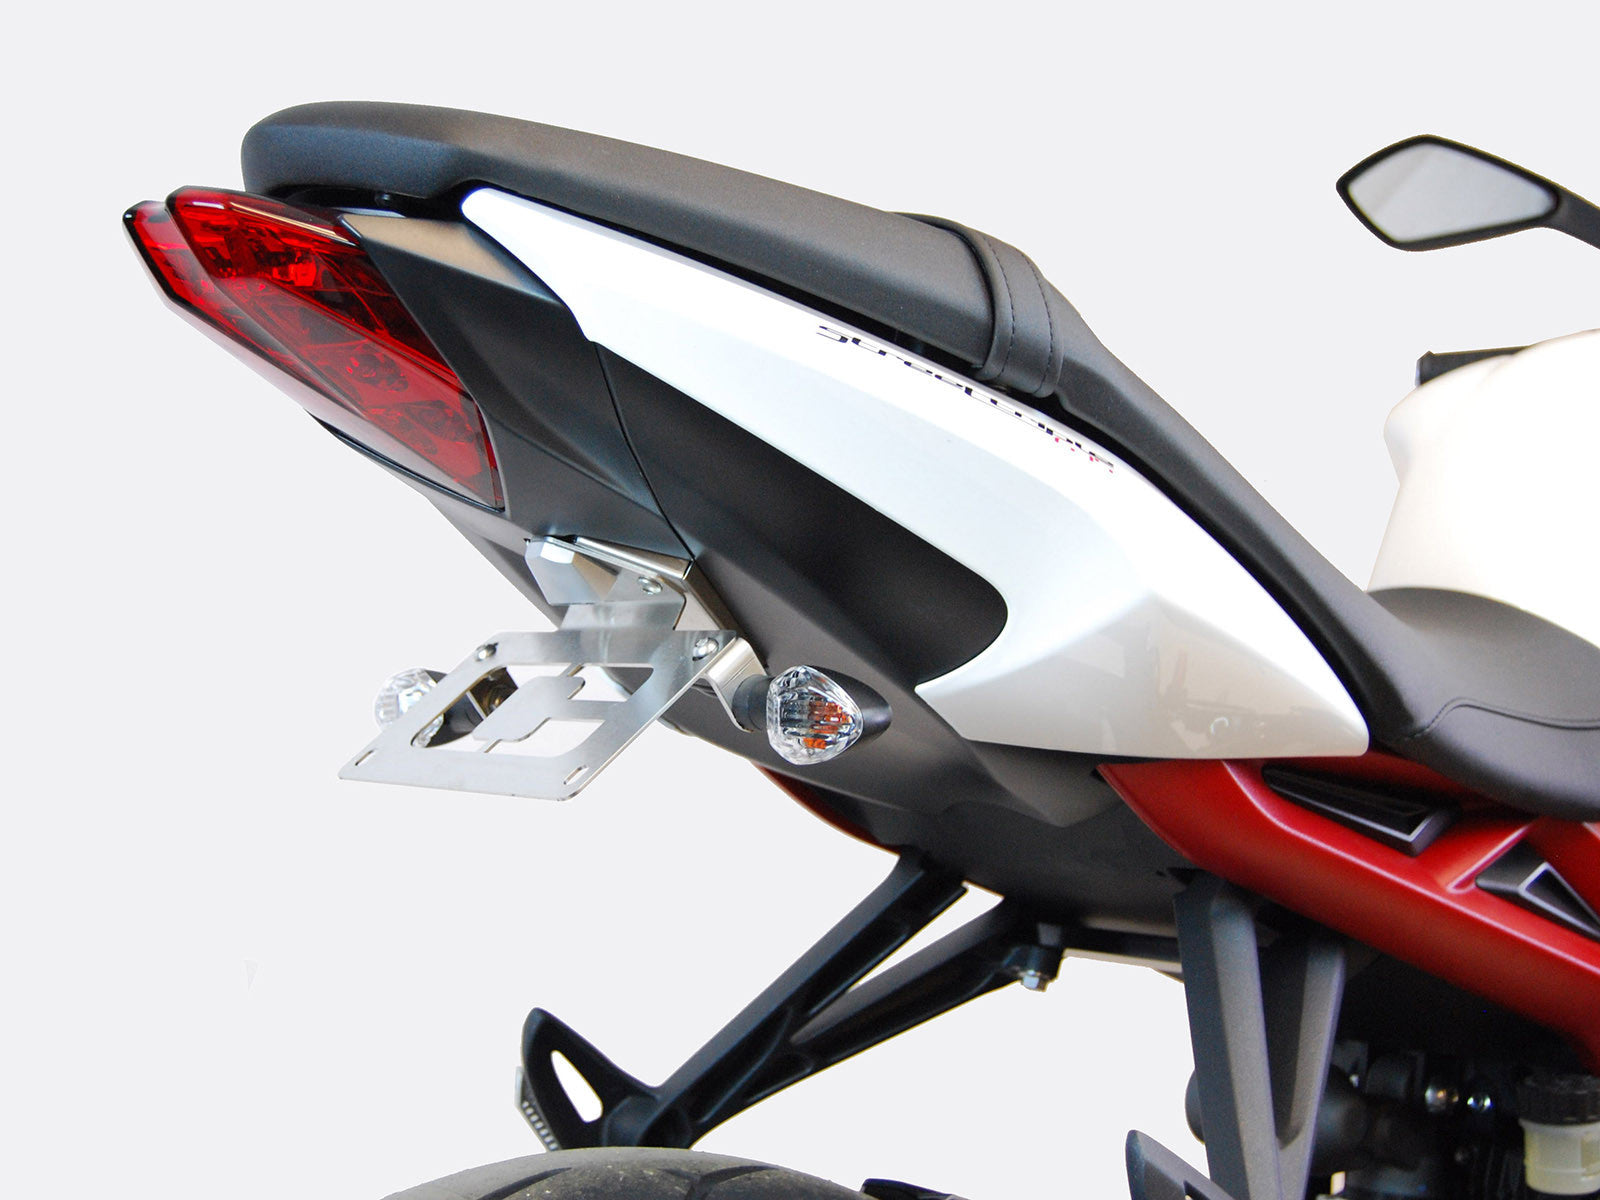 2013-2016 Triumph Street Triple Fender Eliminator Kit. 2013-2016 Triumph Street Triple Tail Tidy